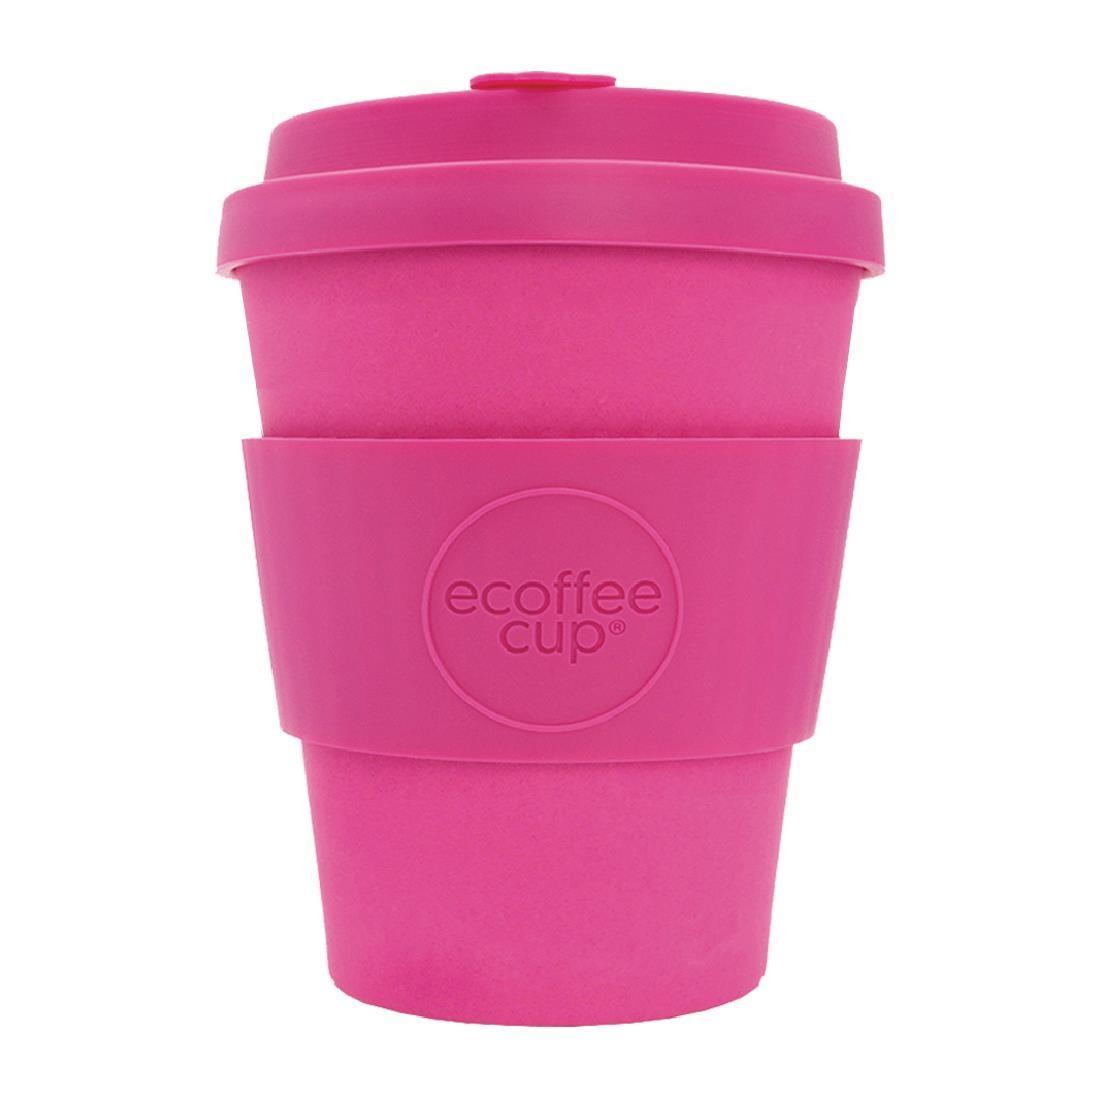 Ecoffee Cup Bamboo Reusable Coffee Cup Pink'd 12oz - Each - DY486